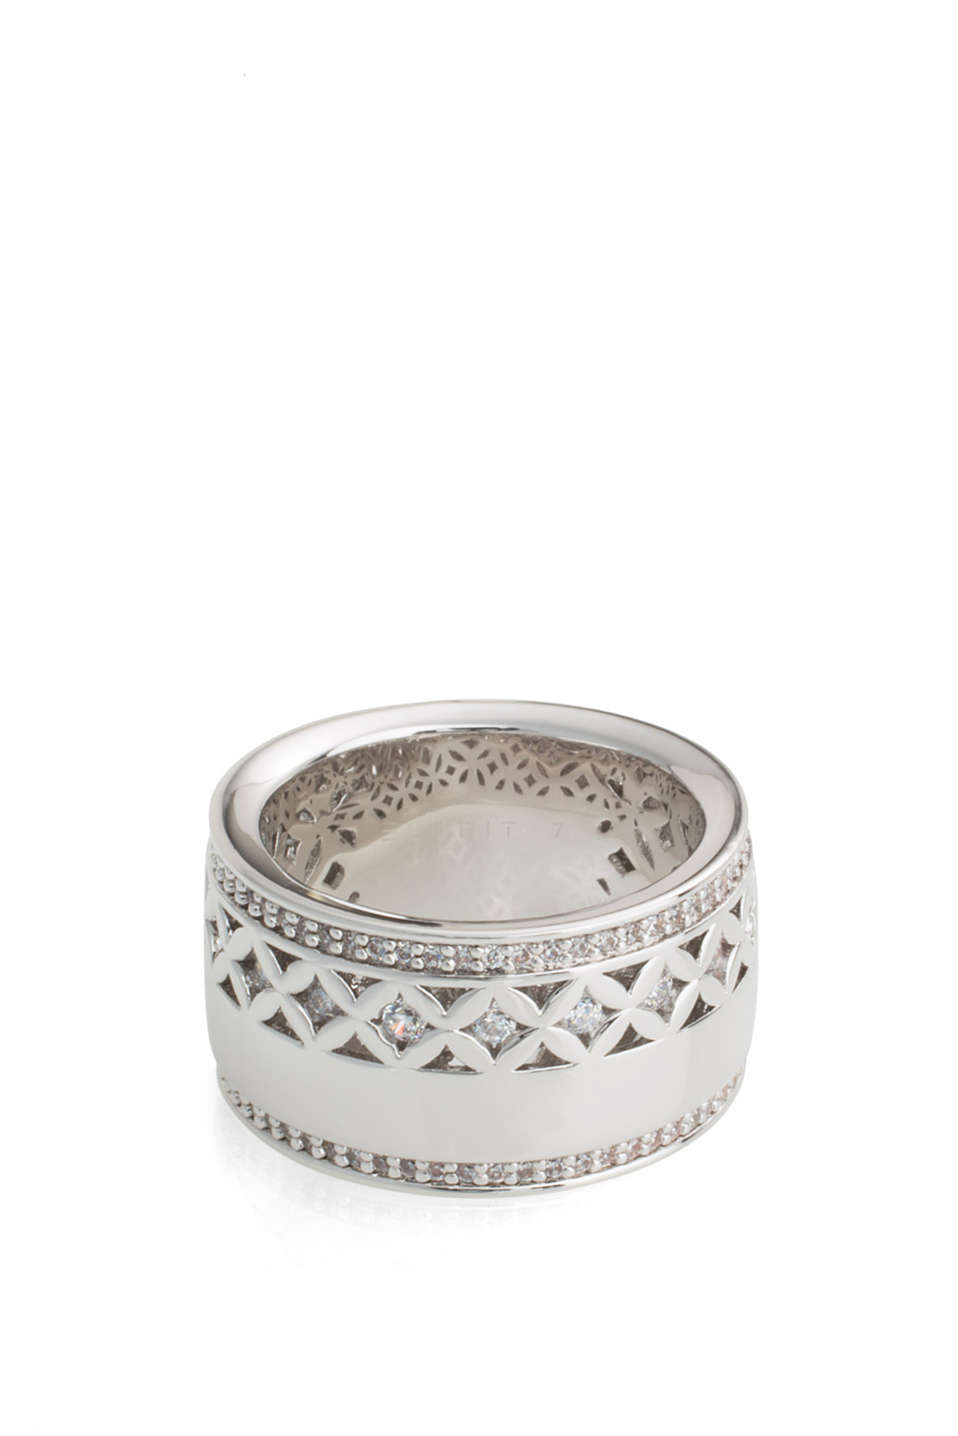 Metal ring with ornamental diamonds and white stones, width approx. 12 mm